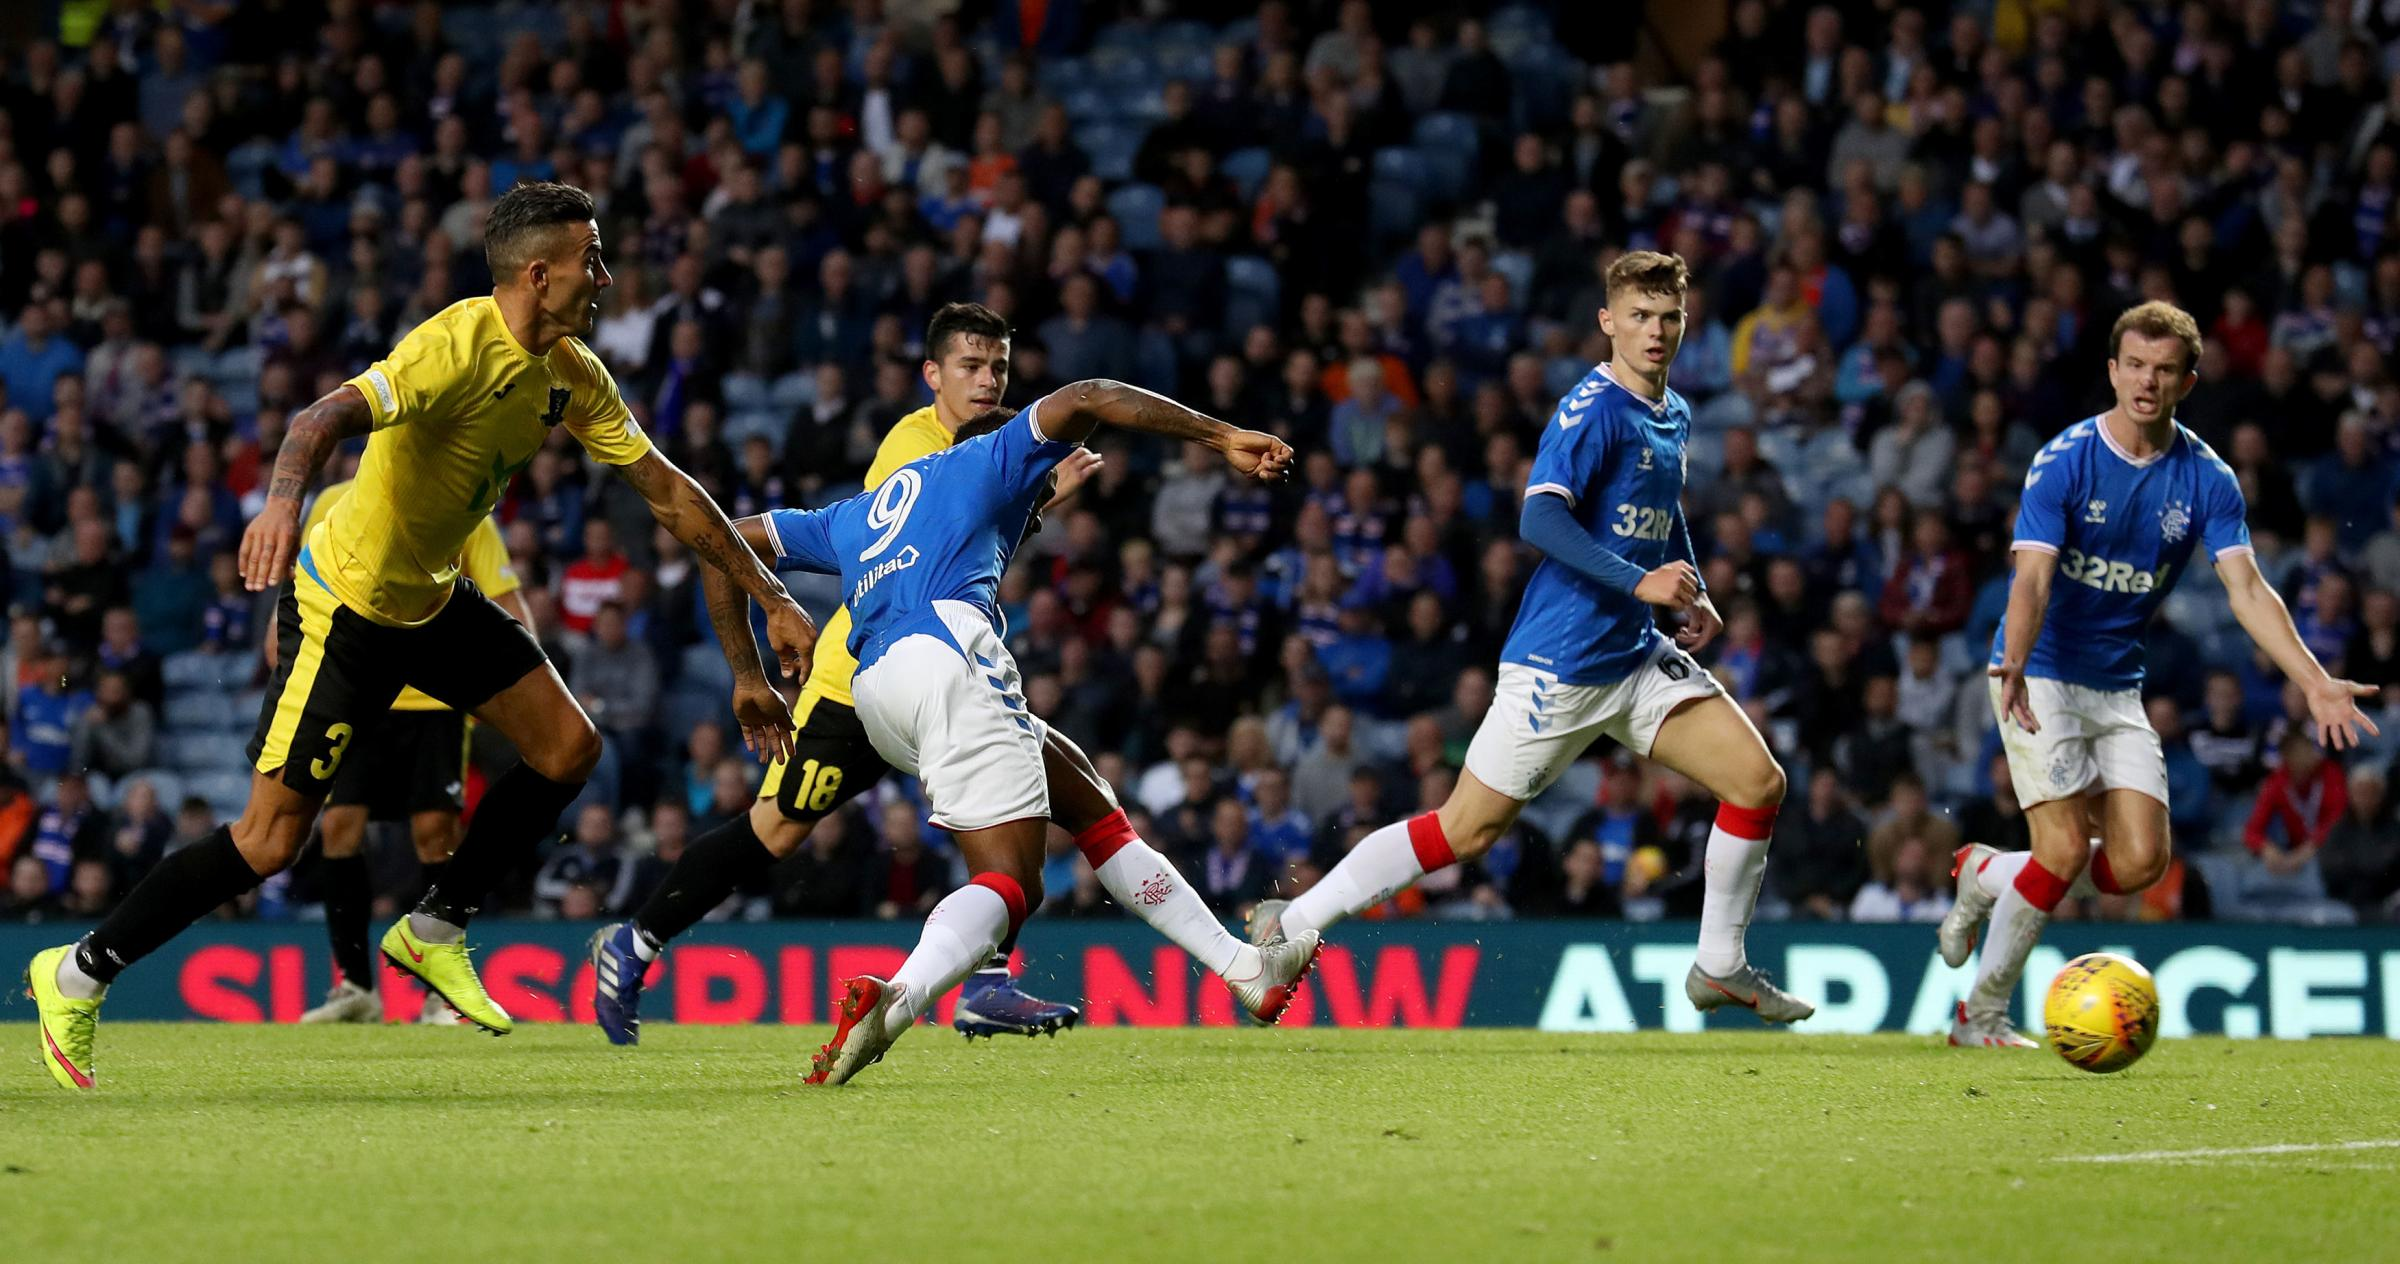 Rangers to face Midtjylland in Europa League third qualifying round